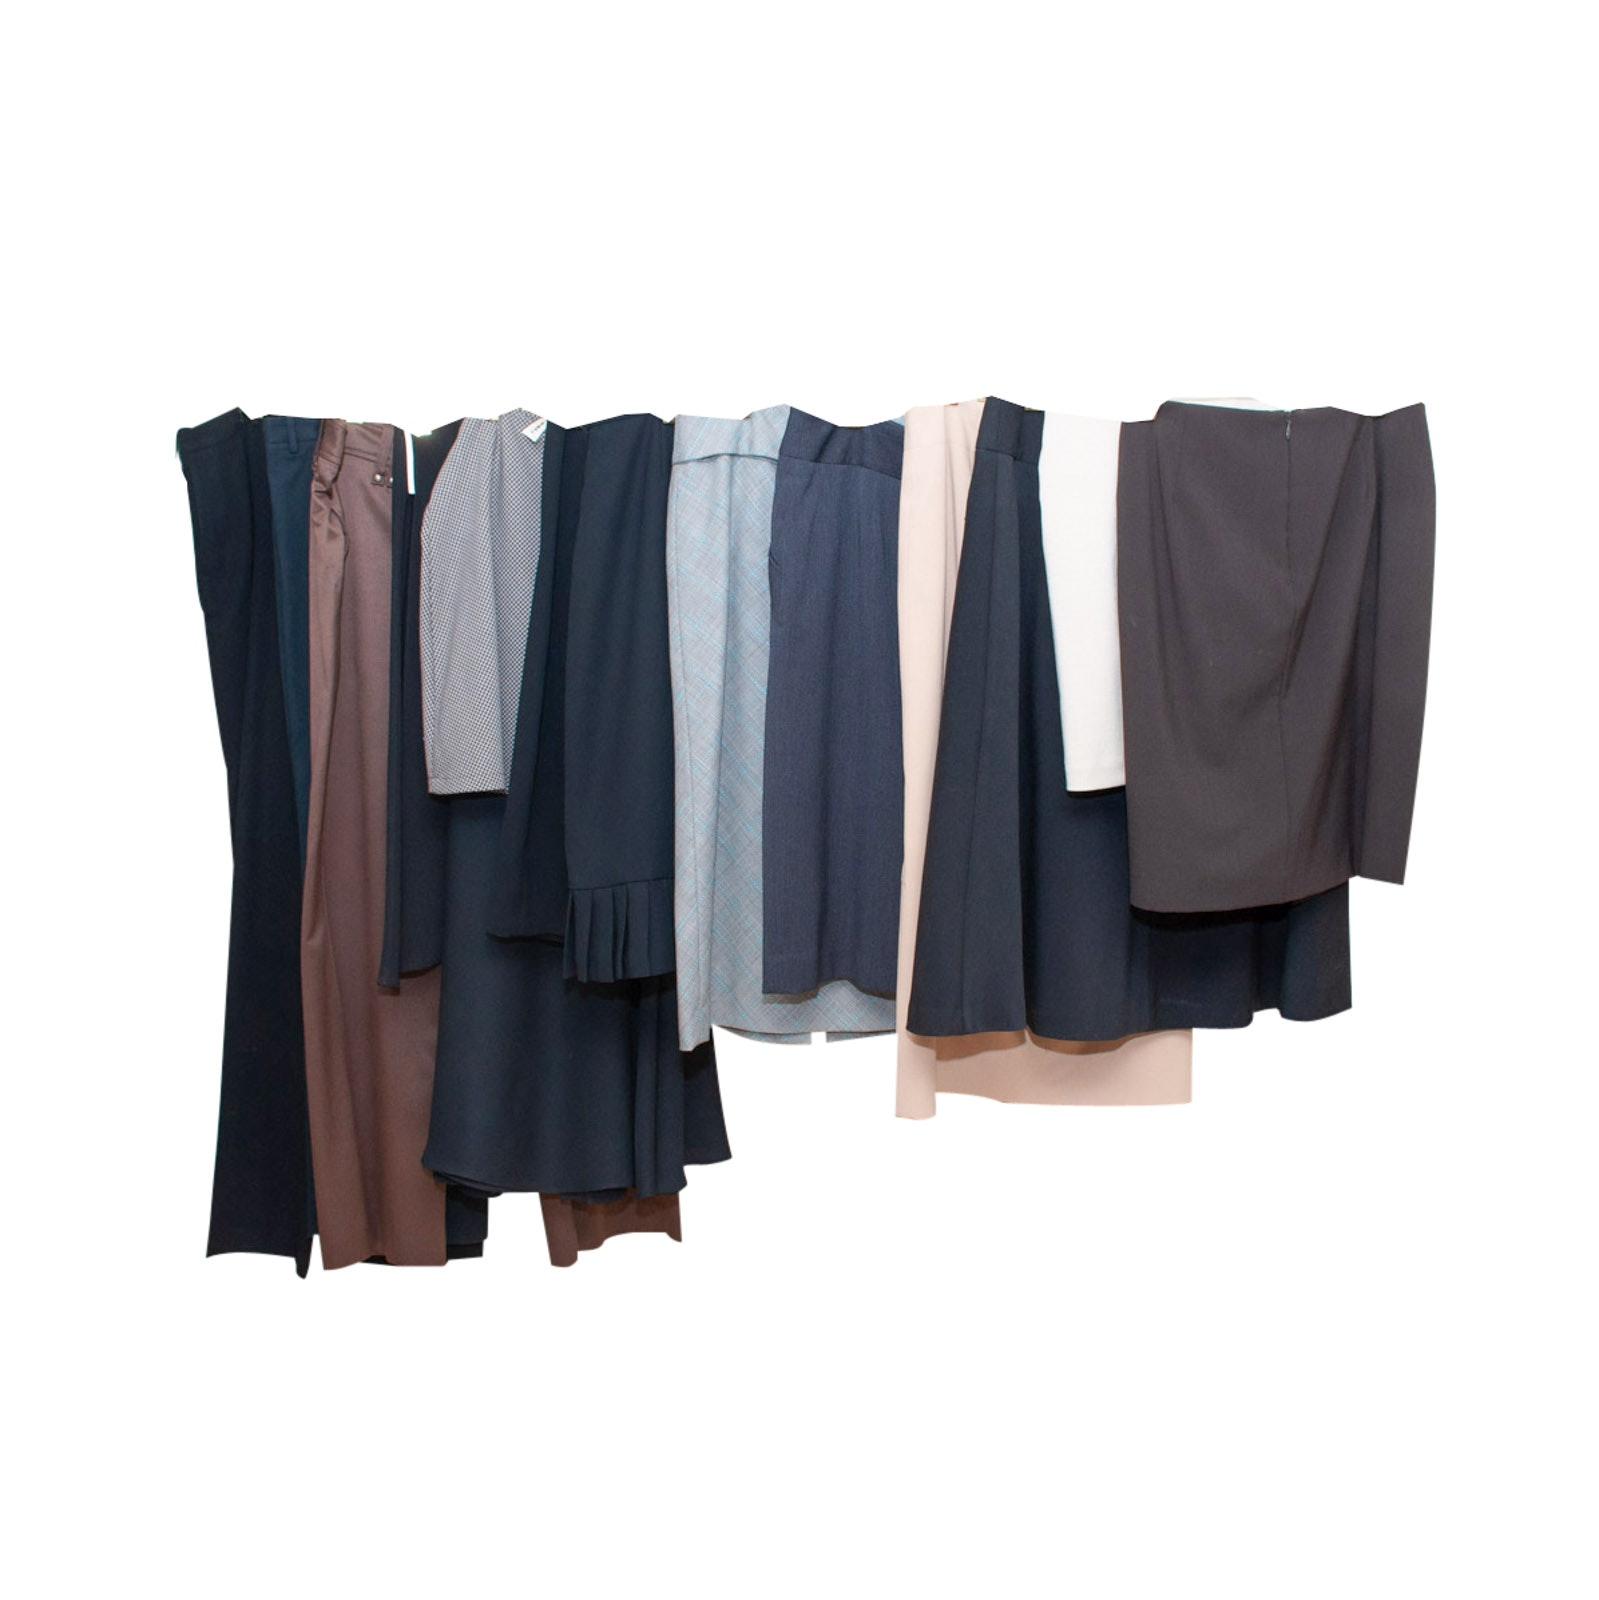 Women's Business Casual Wear Including Kay Unger and Tahari